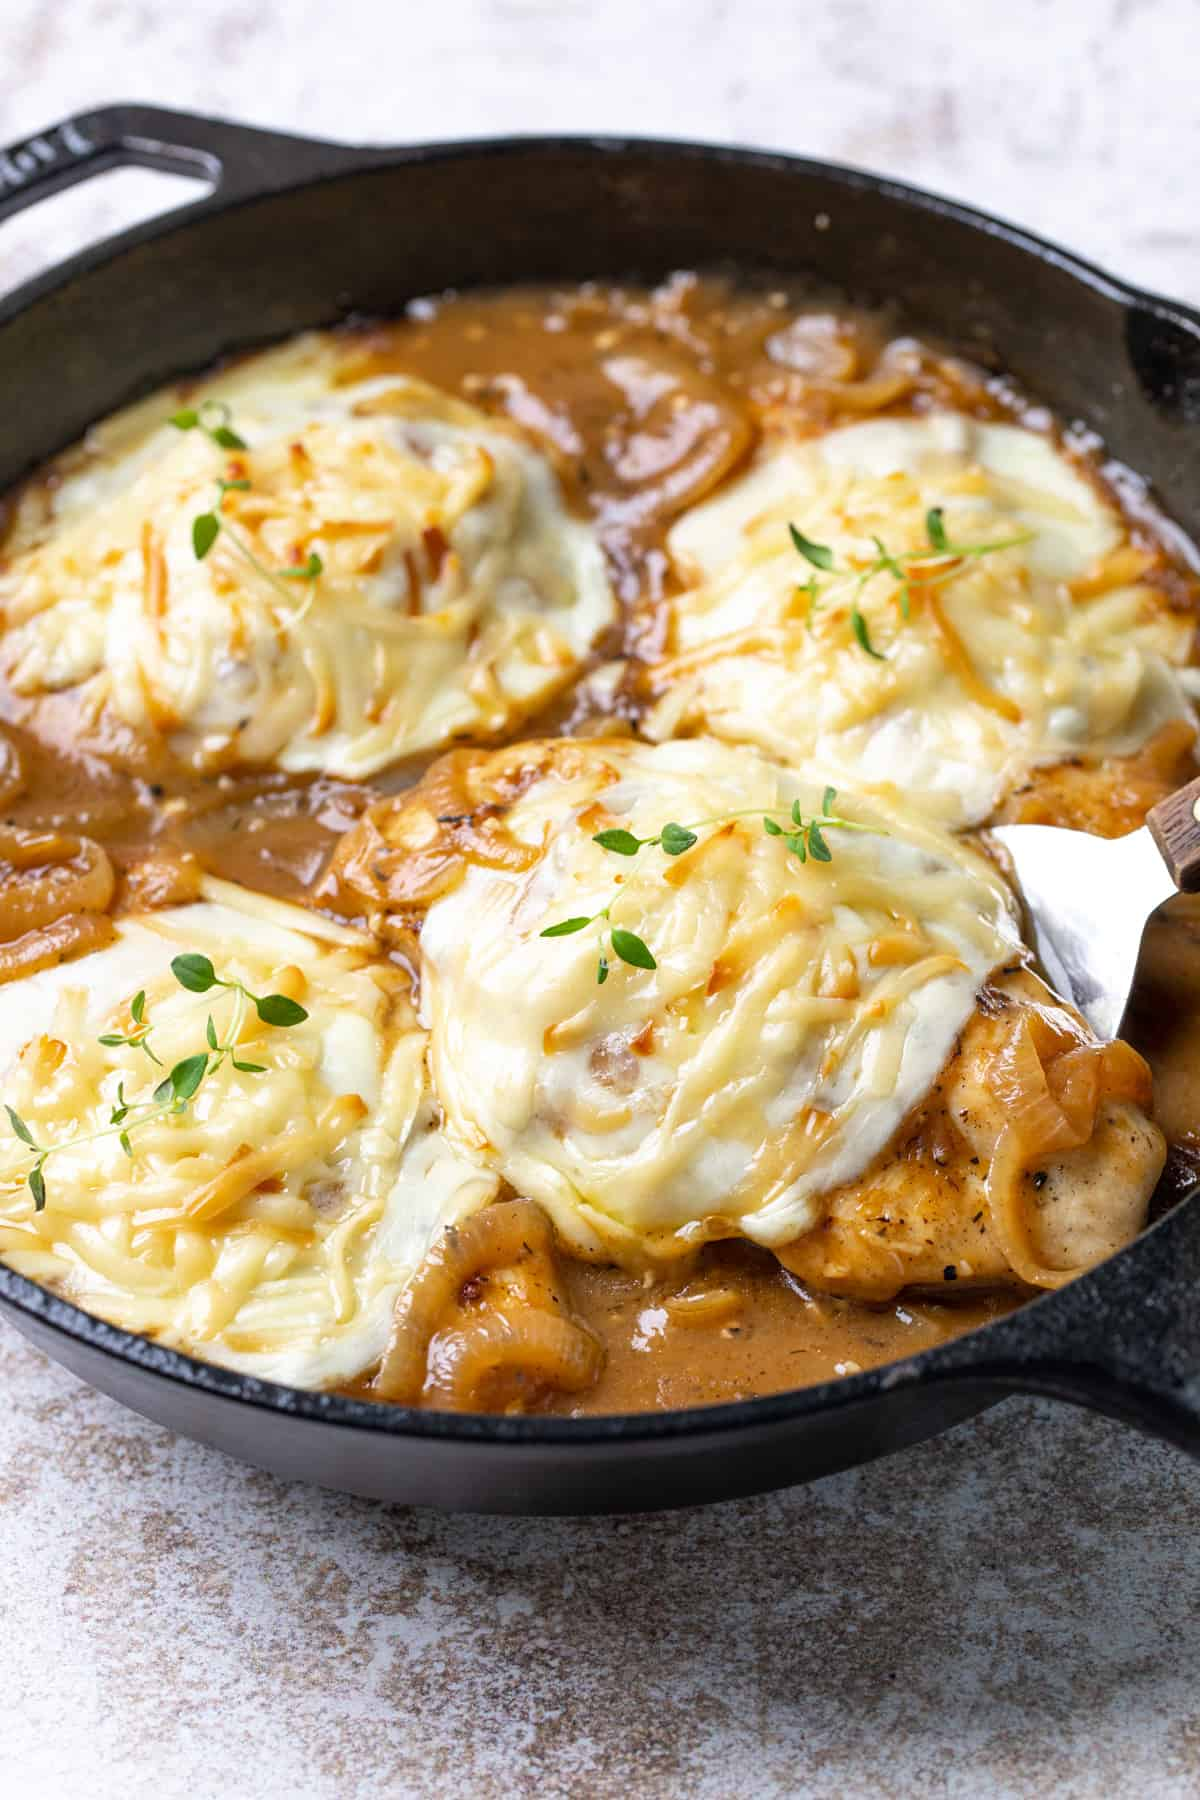 Closeup of chicken breasts topped with cheese in an onion gravy in a cast iron skillet.